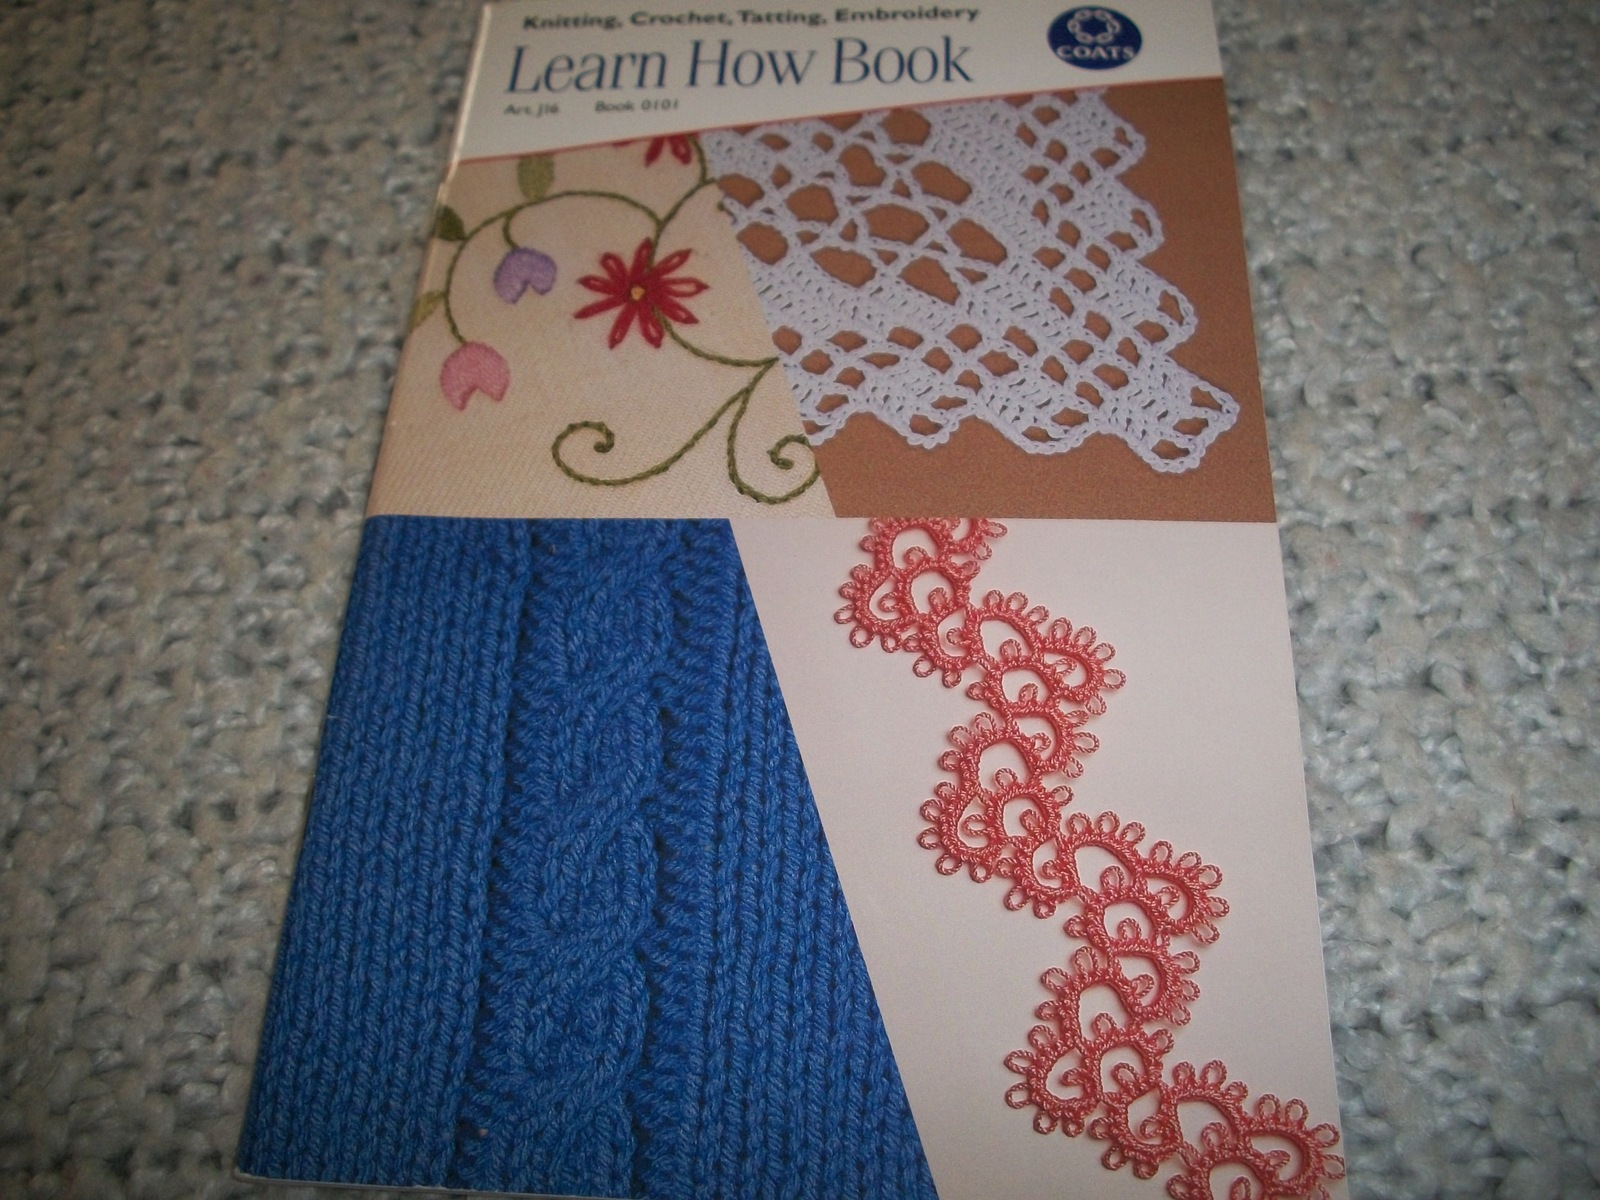 Primary image for Knitting, Crochet, Tatting, Embroidery Learn How Book